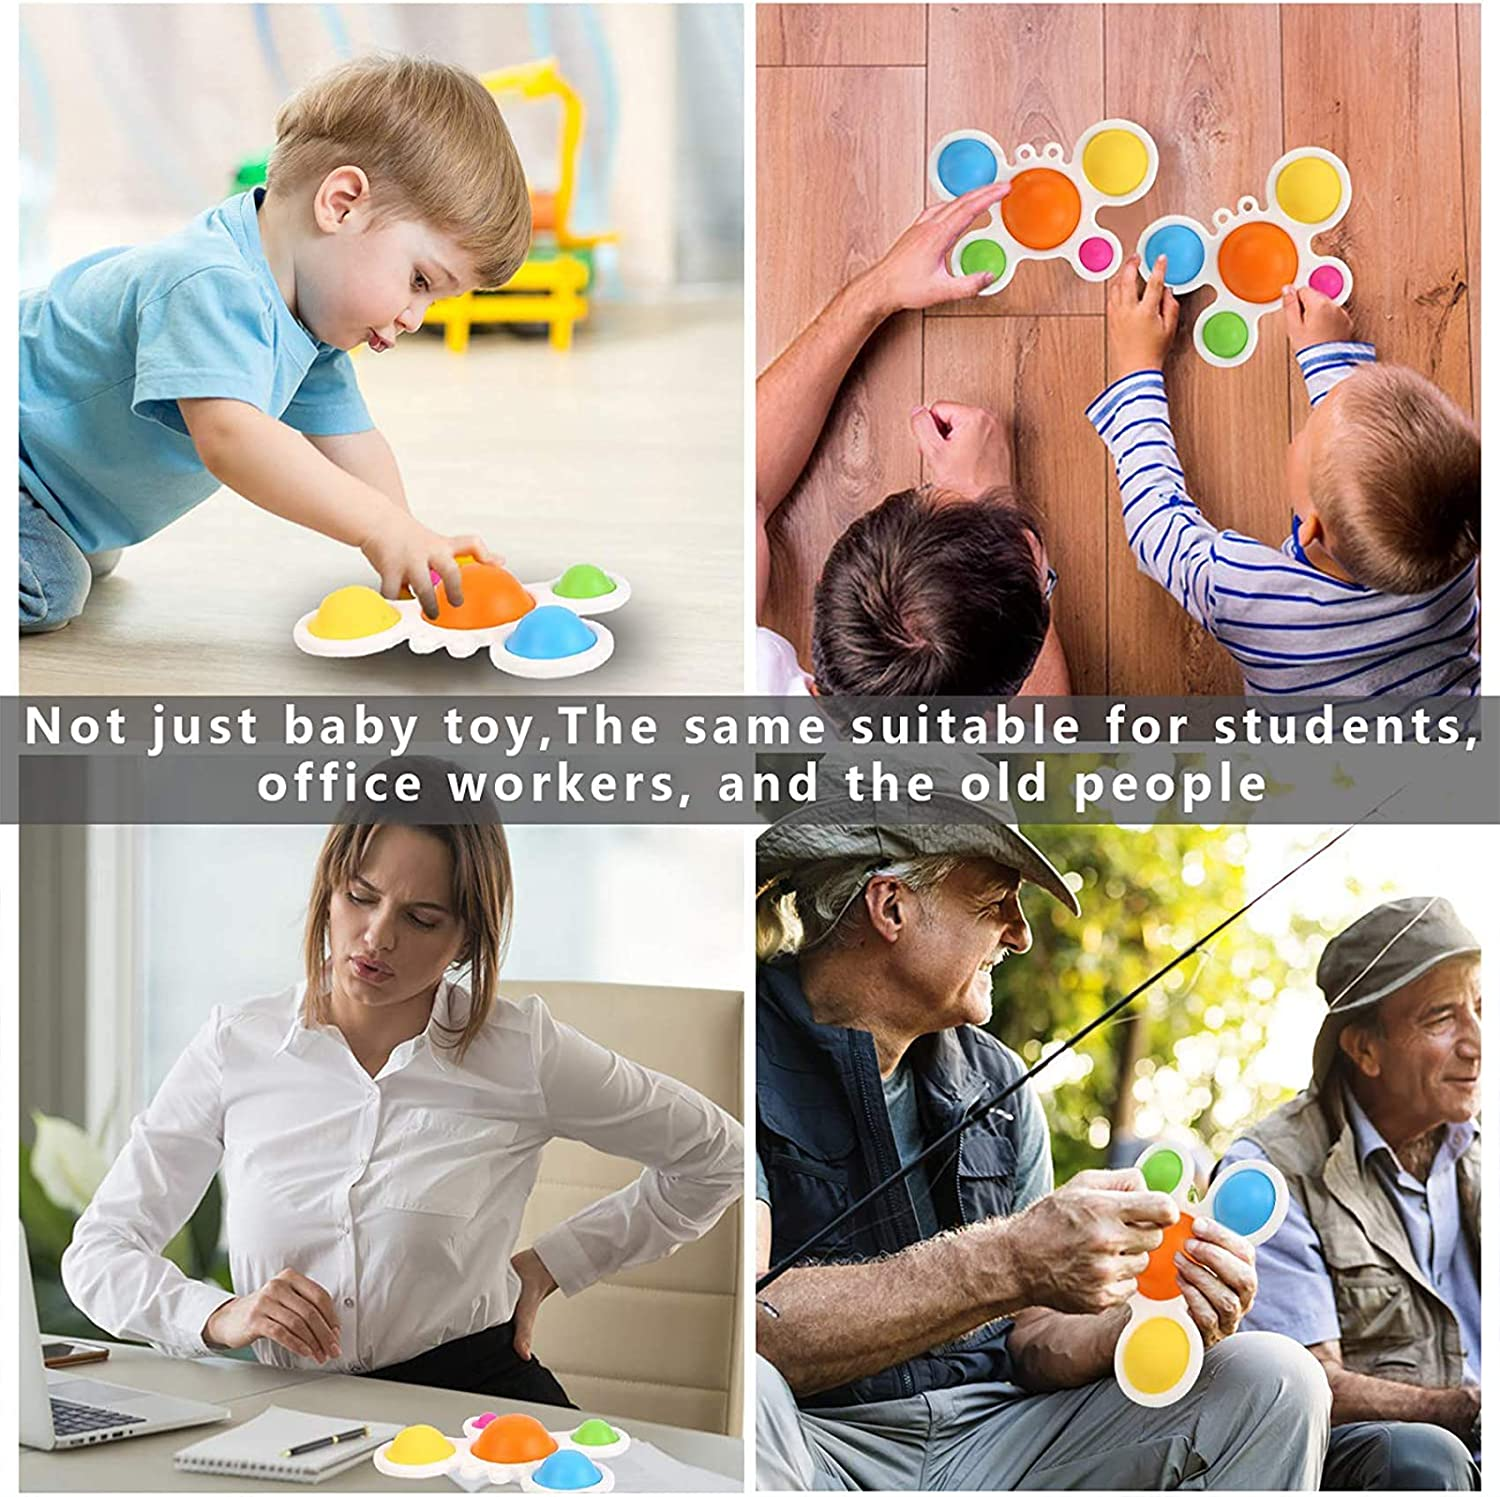 1Pc Multiple Colors Infant Early Education Intelligence Skills Development Attention Intensive Learning Toy Baby Sensory Simple Dimple Toys /& Gifts for Babies and Toddlers Ages 6 Months and Up